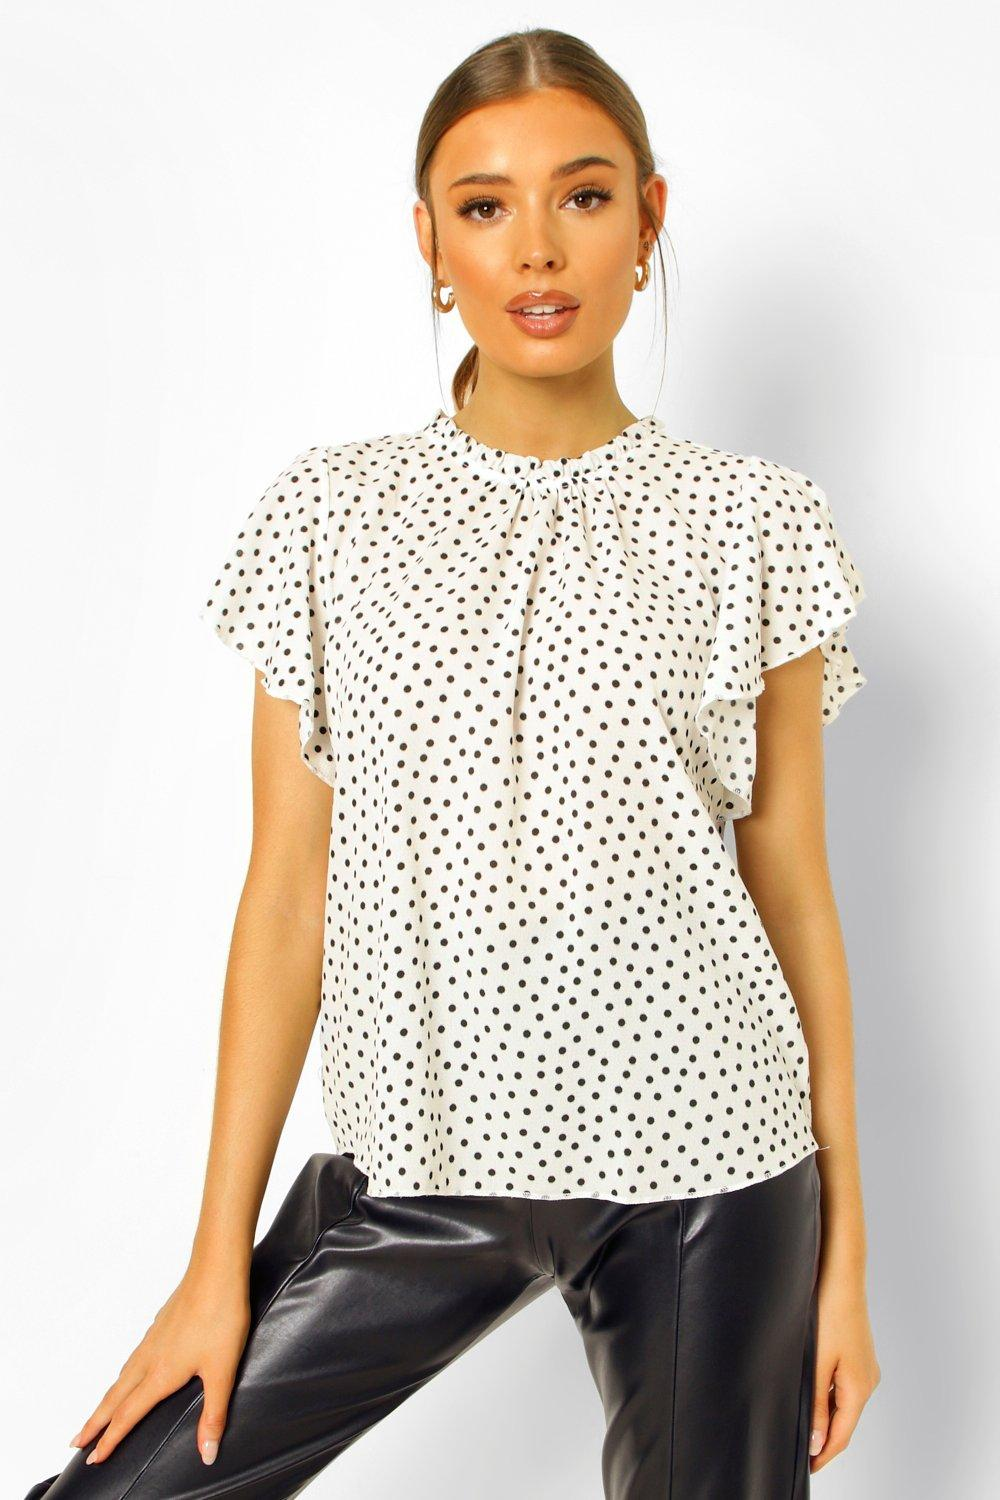 1930s Style Blouses, Shirts, Tops | Vintage Blouses Womens Polka Dot Frill Sleeve Woven Blouse - White - 10 $25.00 AT vintagedancer.com